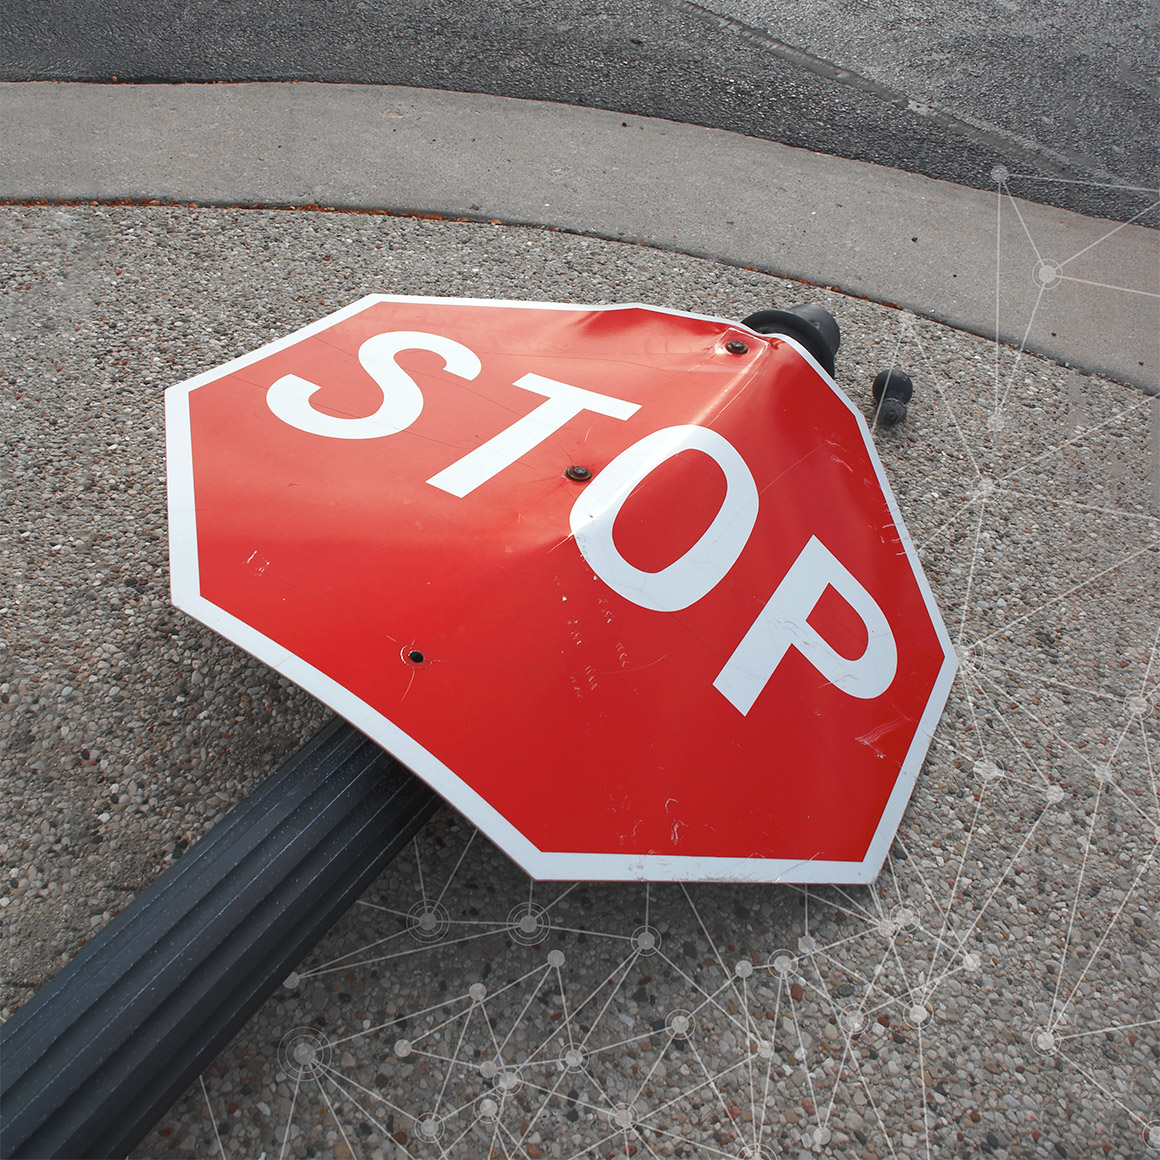 traffic and road sign management software